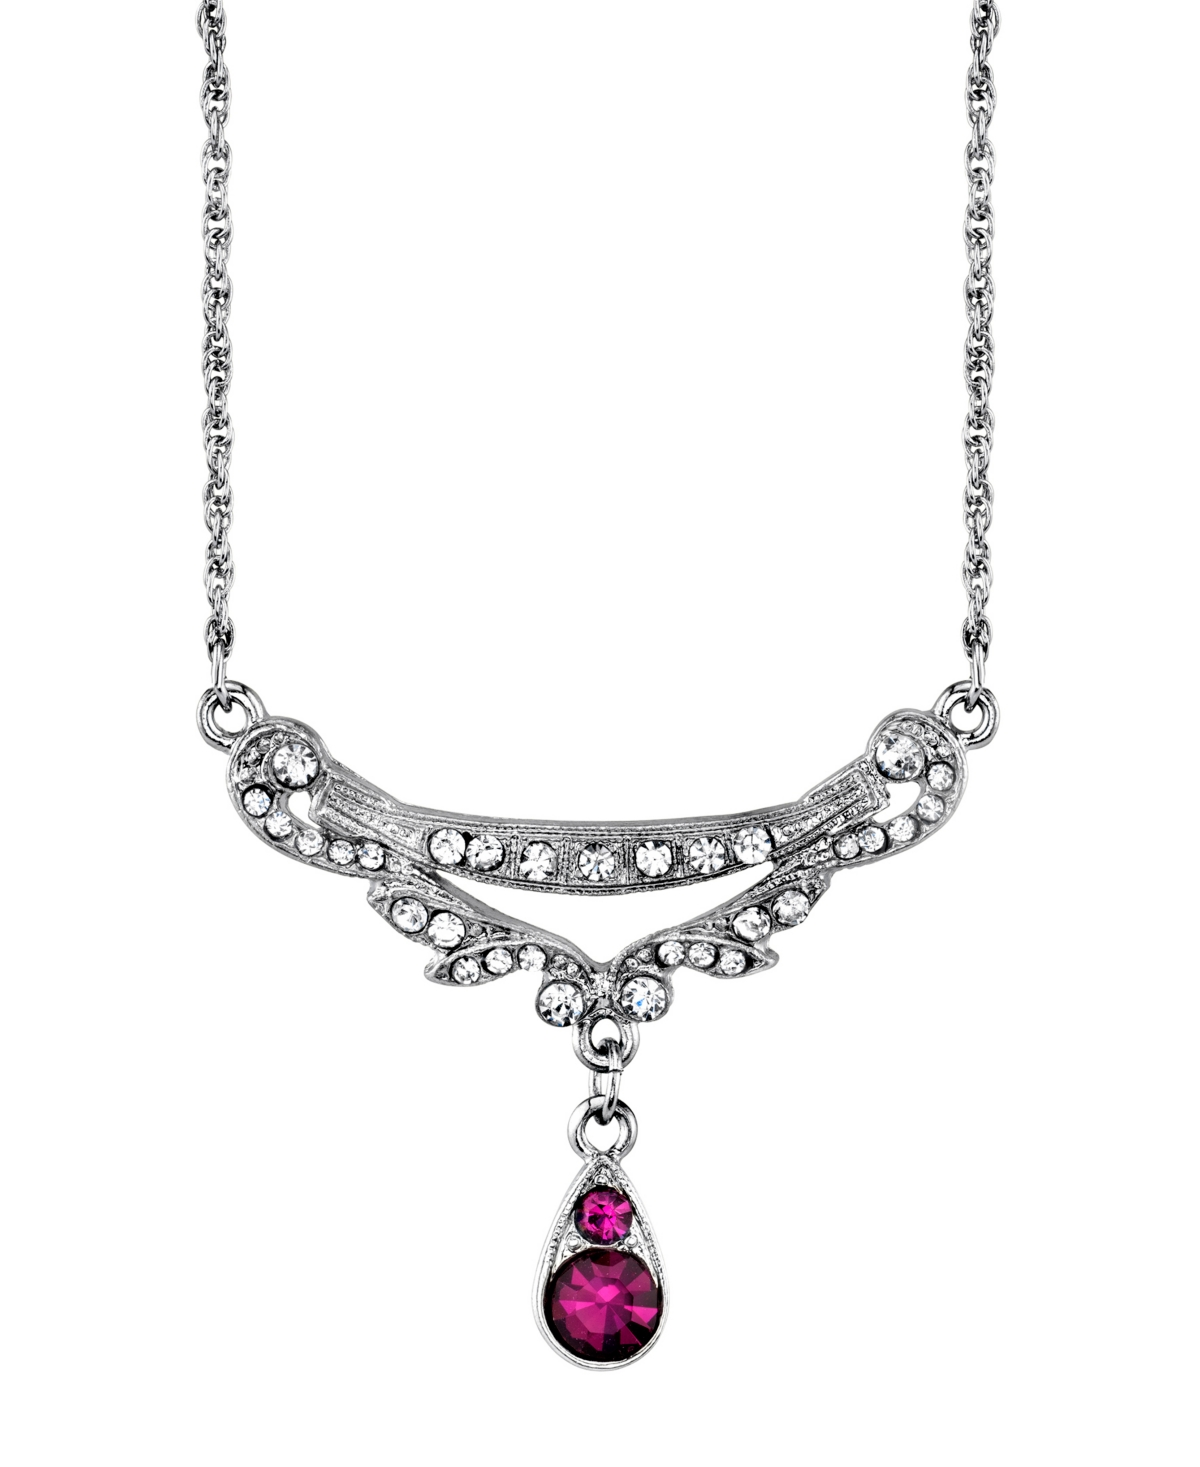 Downton Abbey Silver-Tone Clear and Amethyst Color Crystal Necklace 16